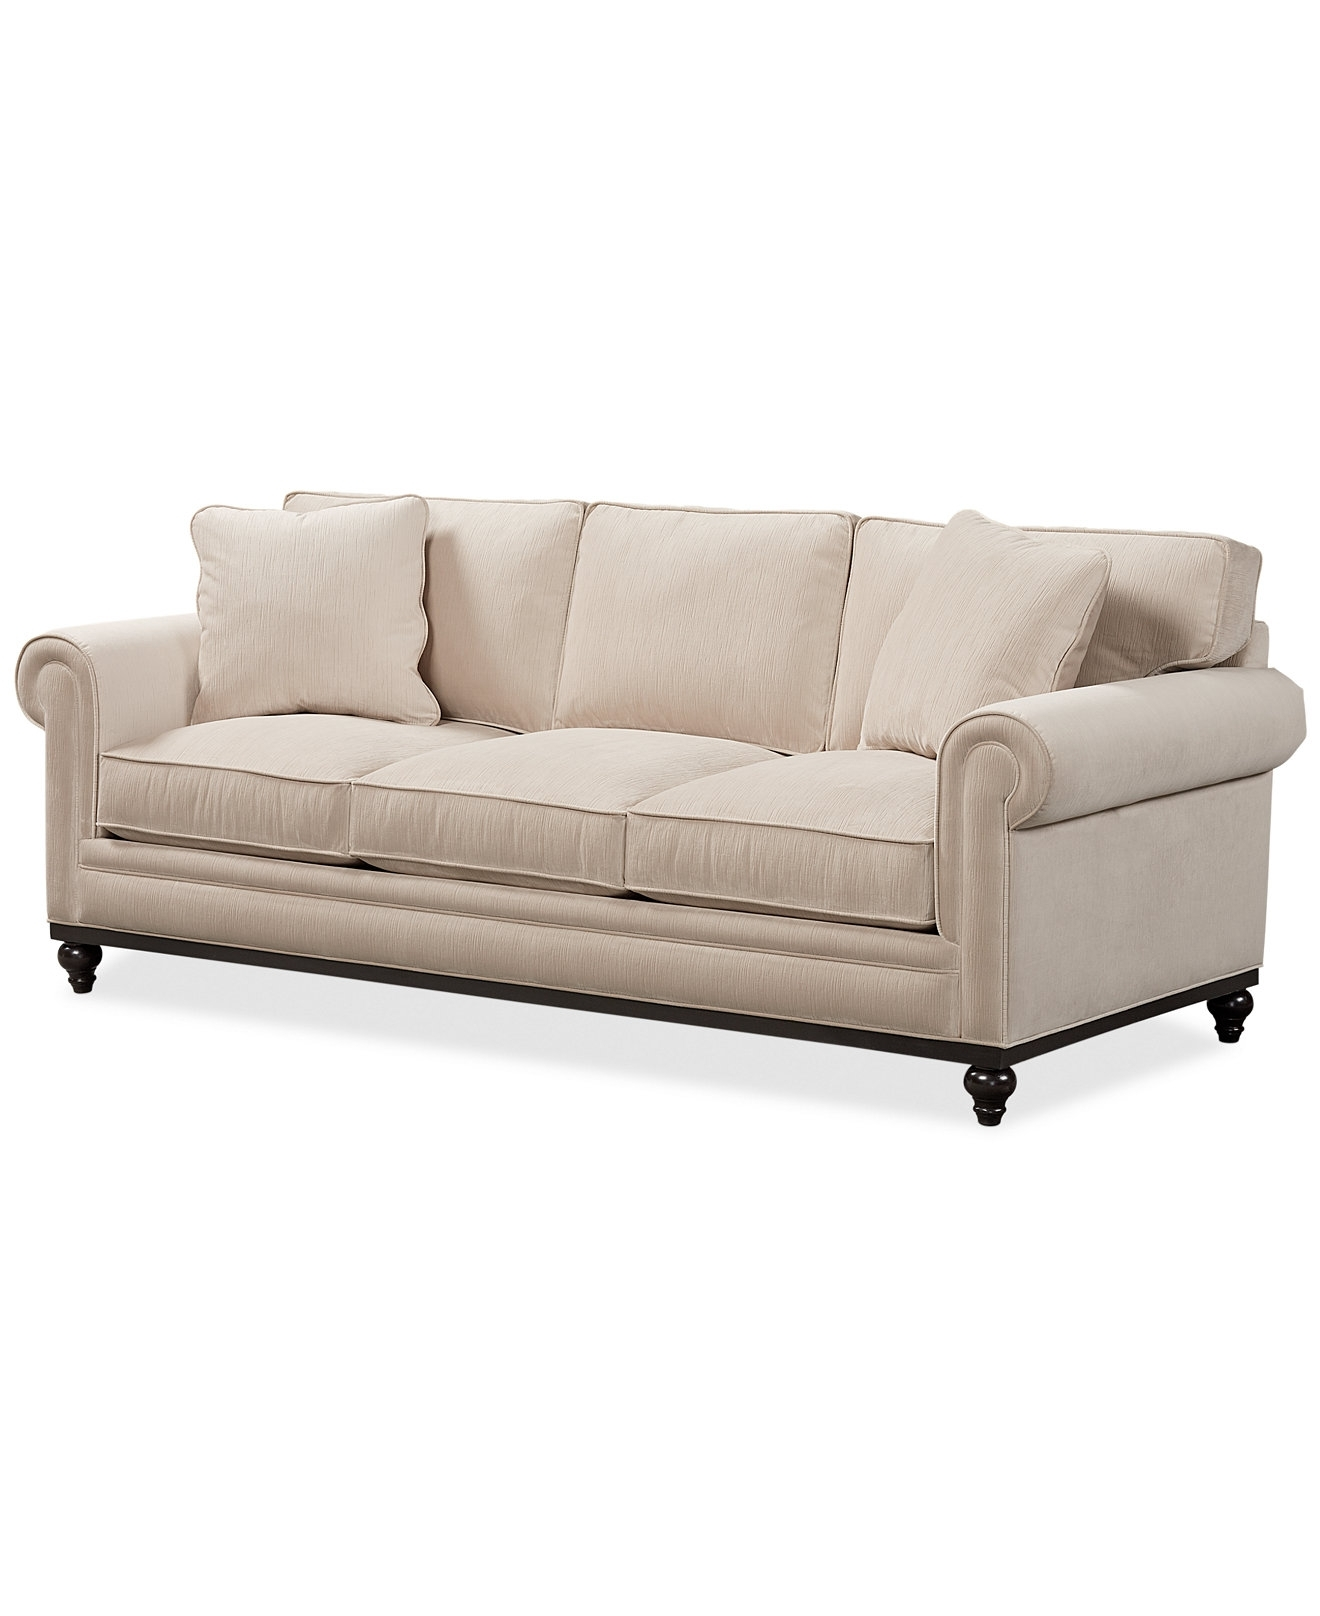 Martha Stewart Collection New Club Fabric Roll Arm Sofa – Couches Pertaining To Widely Used Chaise Lounge Chairs At Macy's (View 11 of 15)